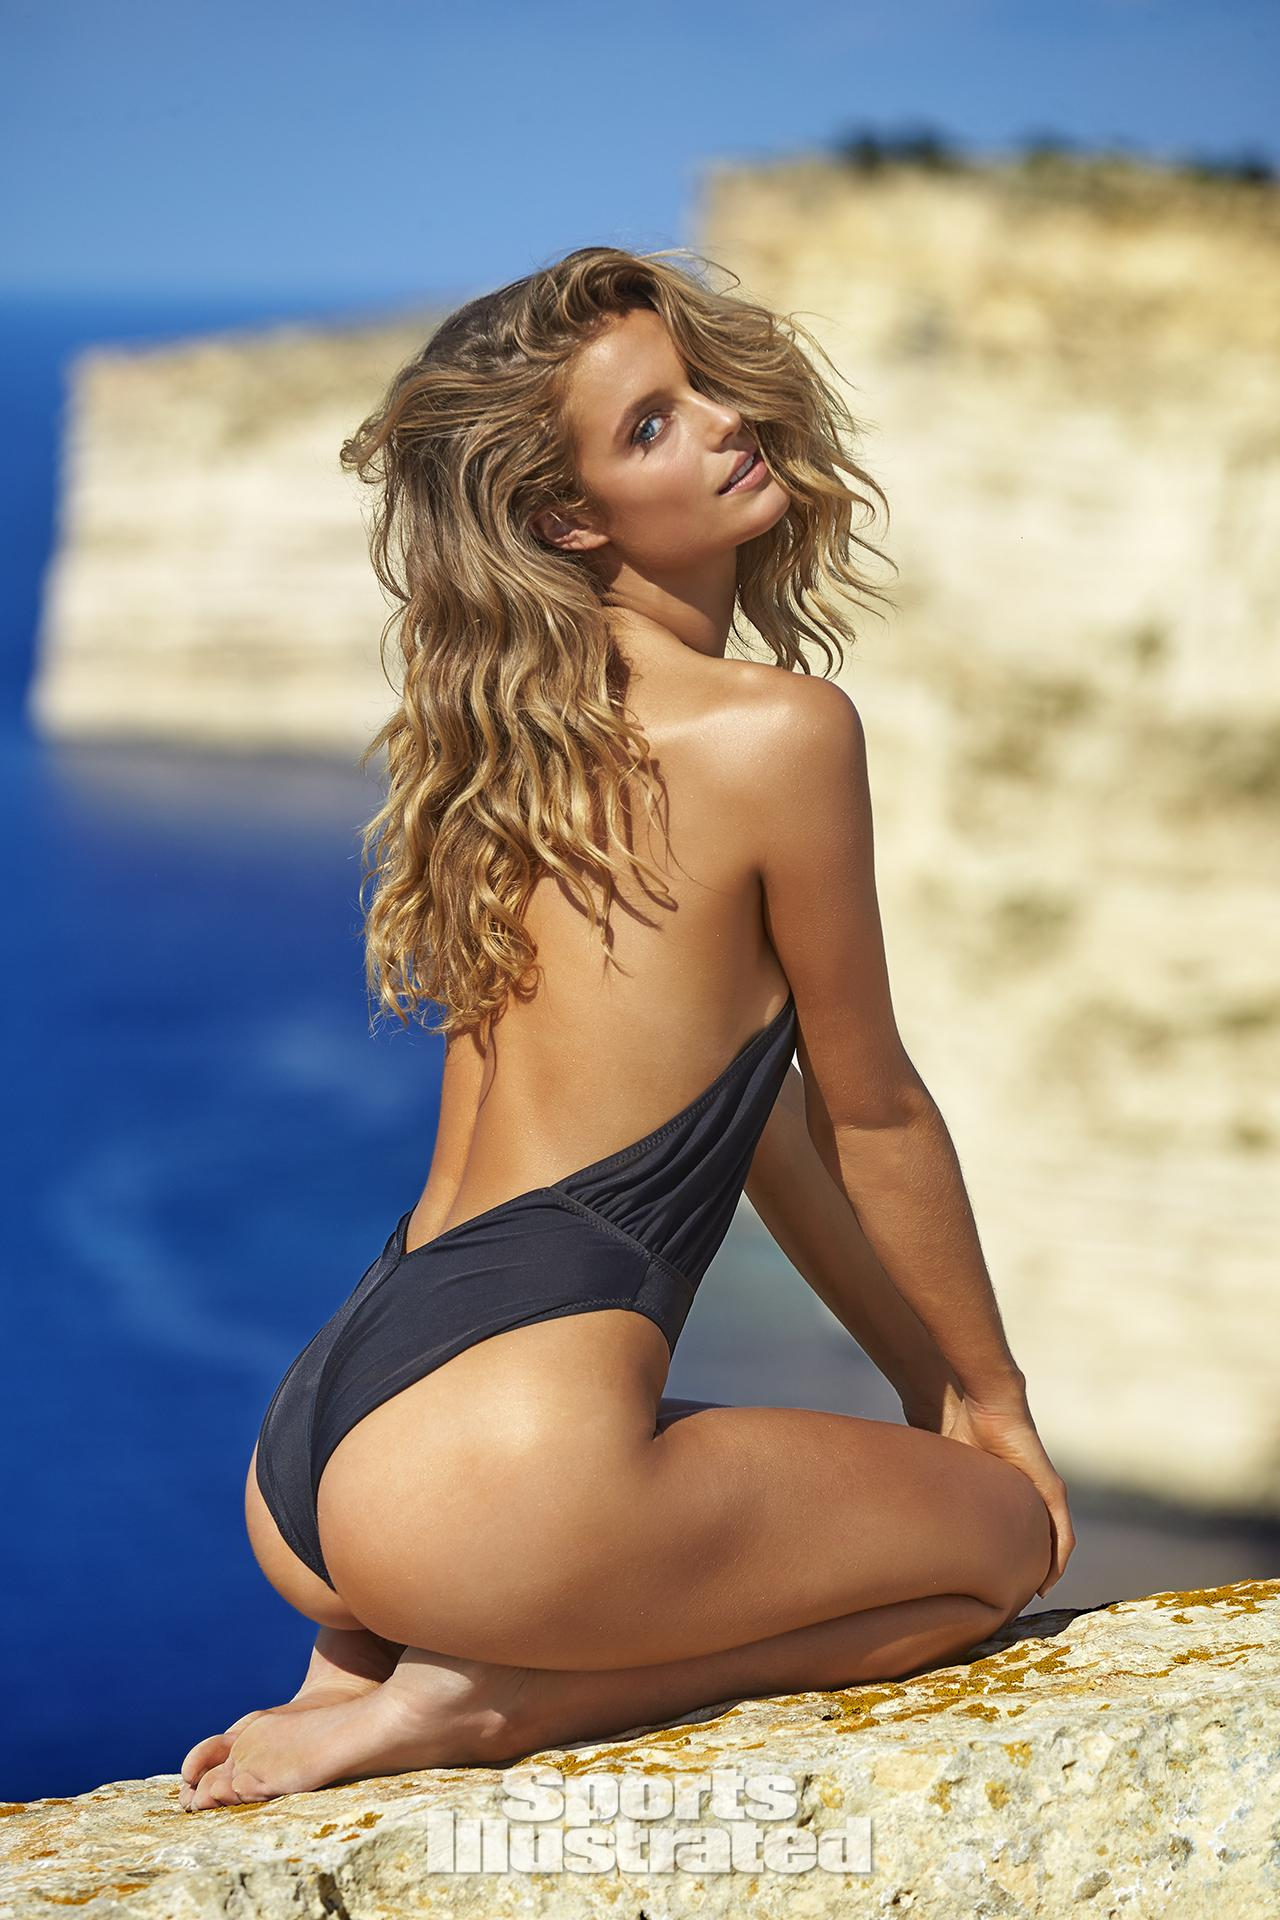 Kate Bock was photographed by Ben Watts in Malta. Swimsuit by Norma Kamali.